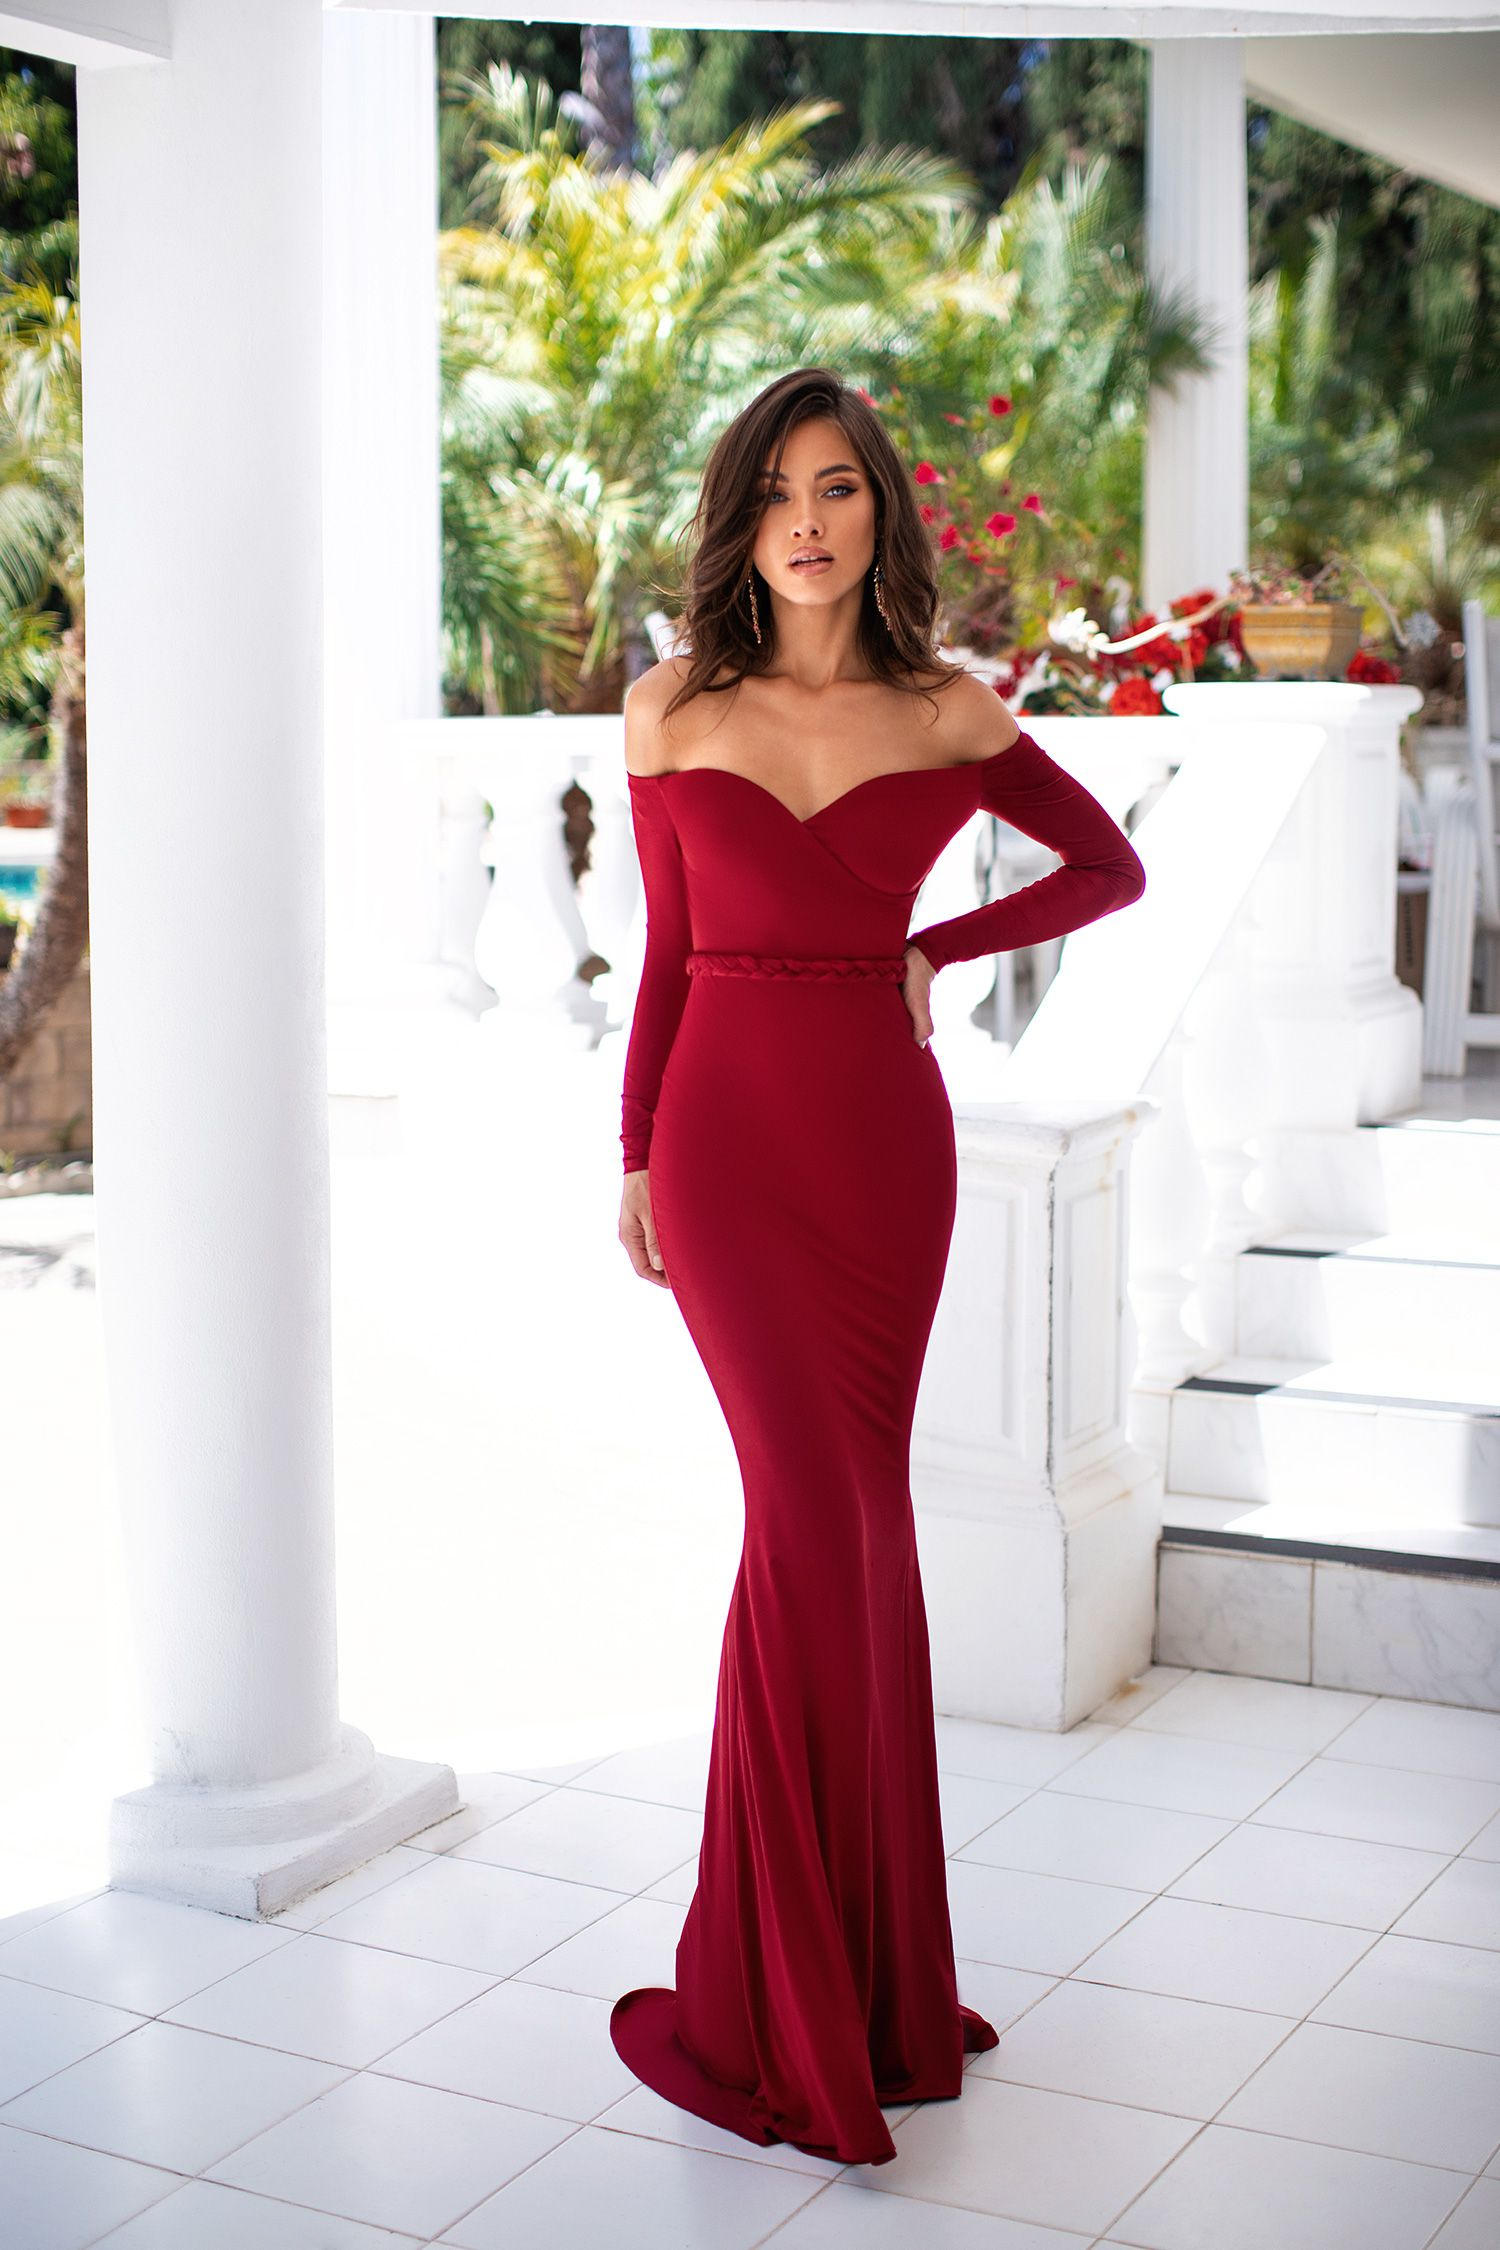 Viola Wine Red Prom Dresses Long With Sleeves Dresses Prom Outfits [ 2250 x 1500 Pixel ]